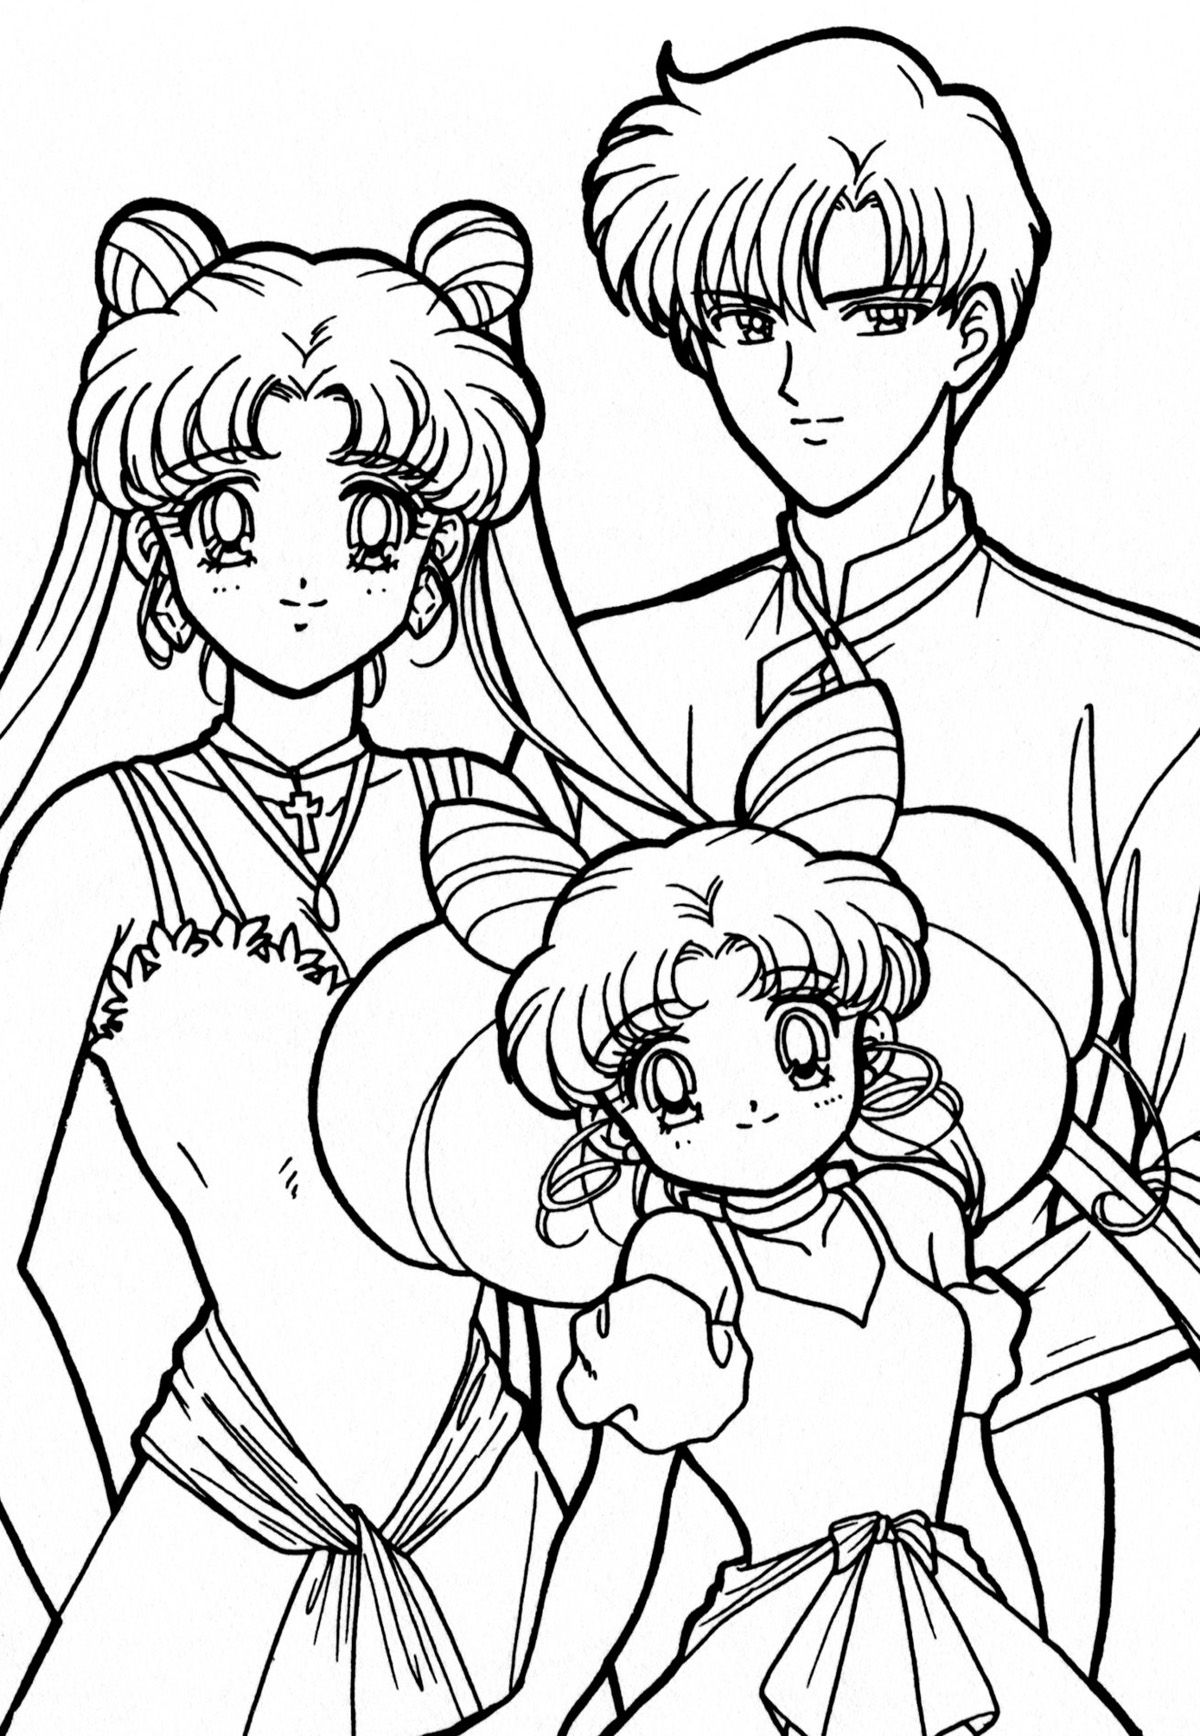 sailor moon coloring pages characters - photo#14